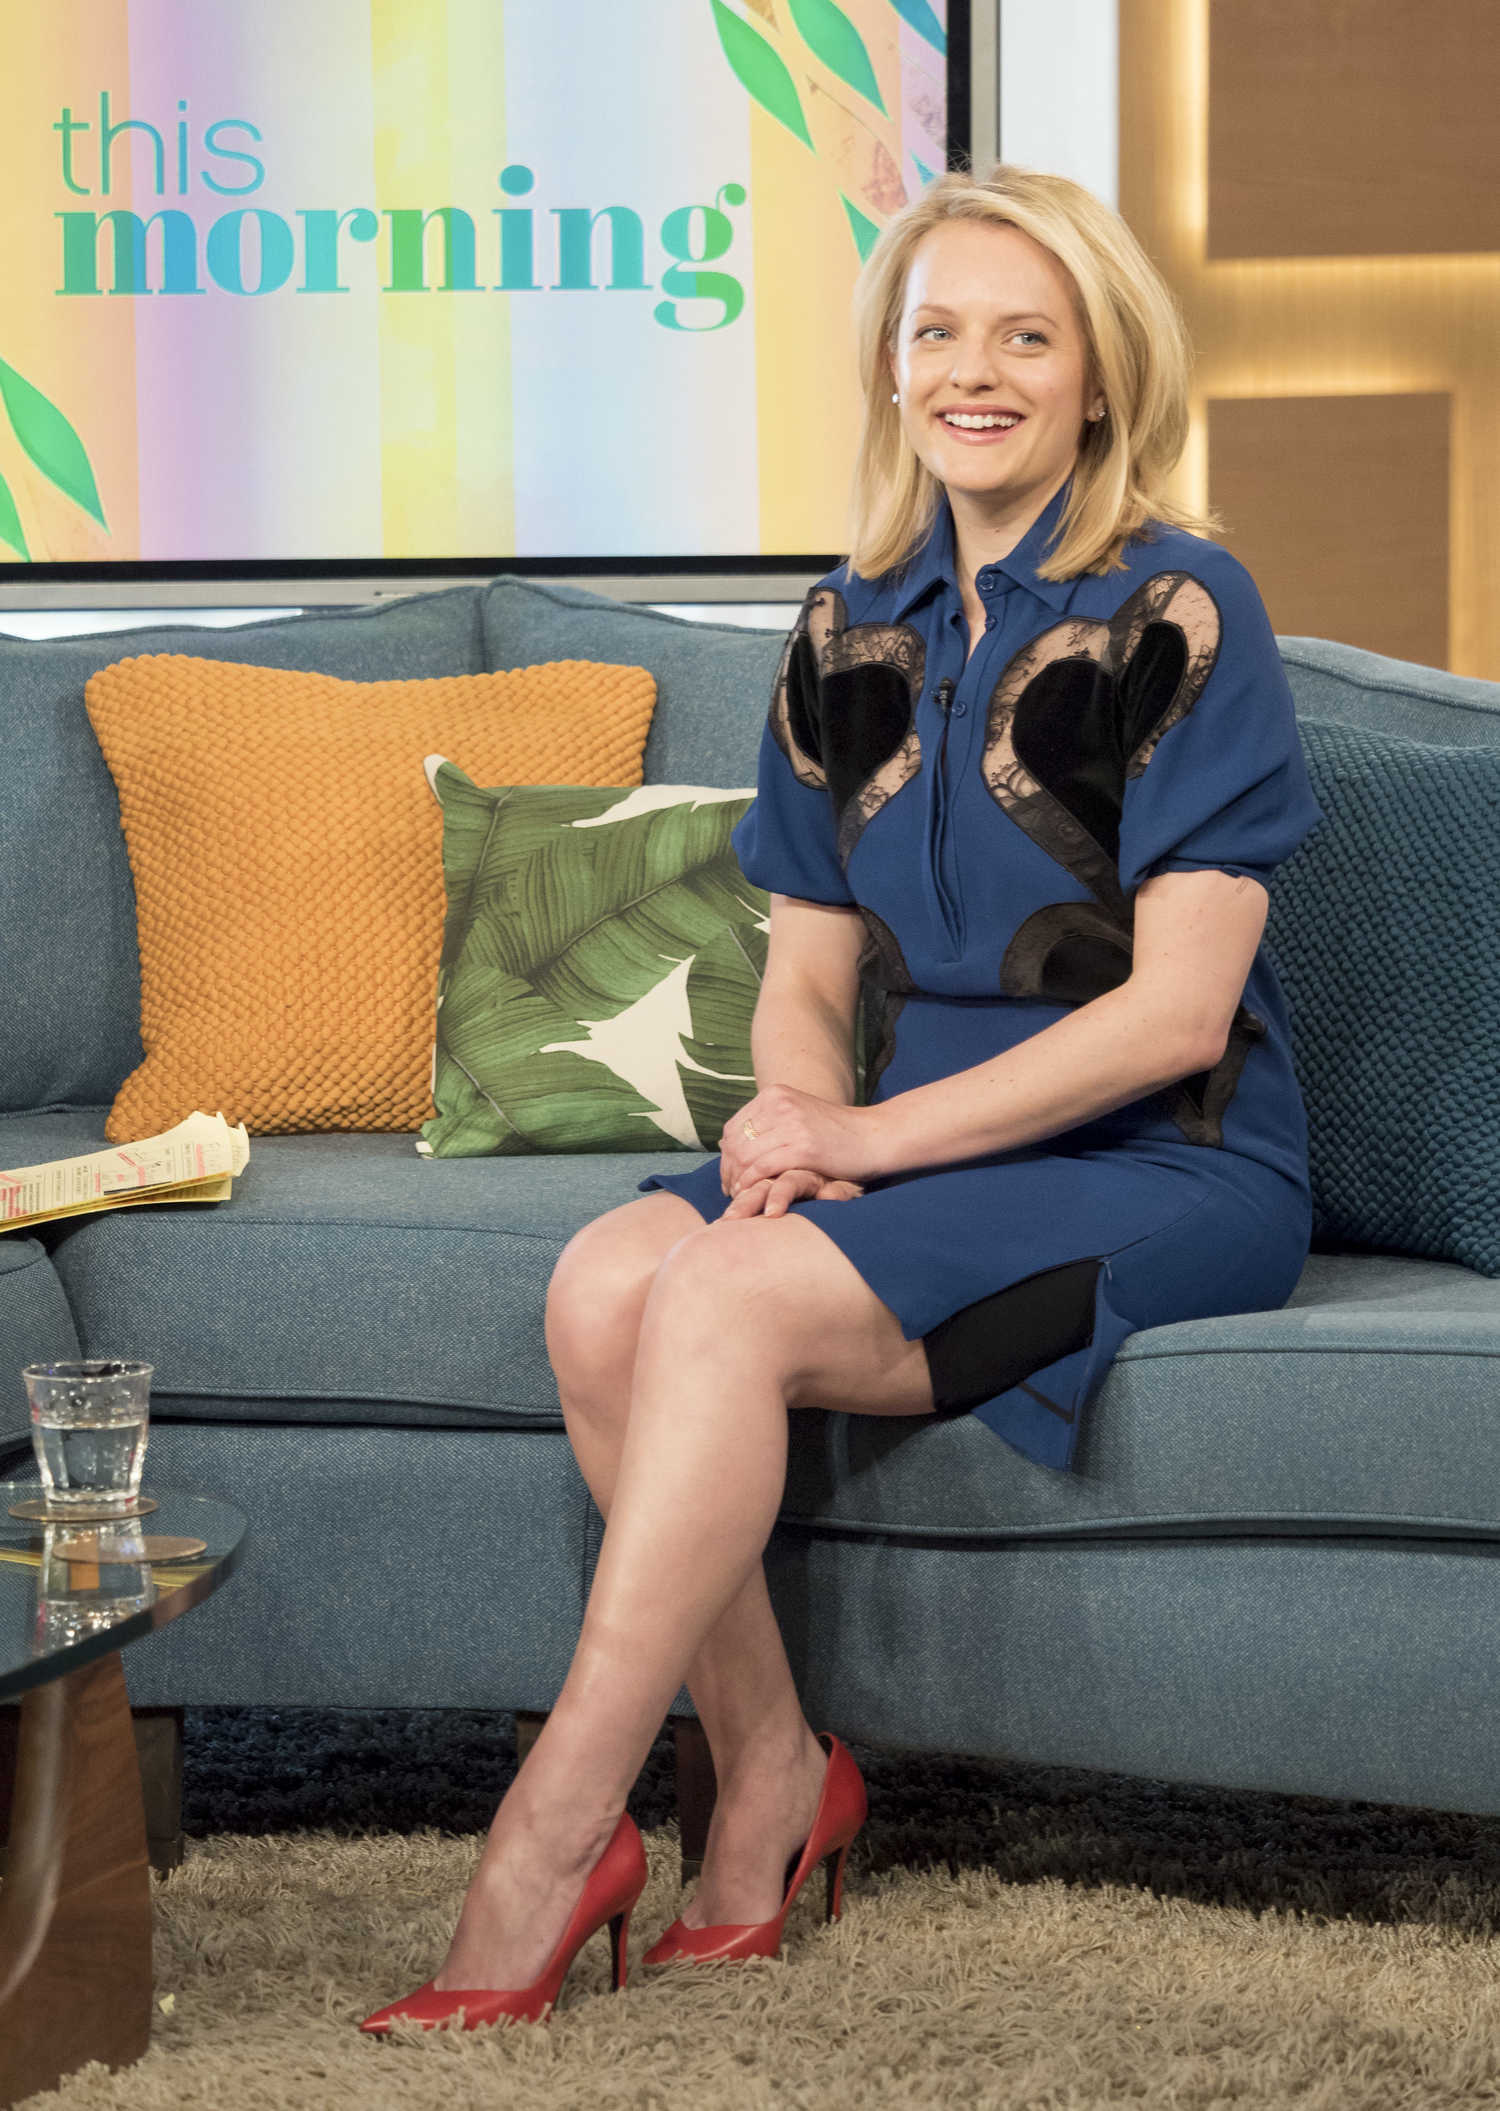 elisabeth-moss-at-this-morning-tv-show-in-london-3 Rise Tv Show